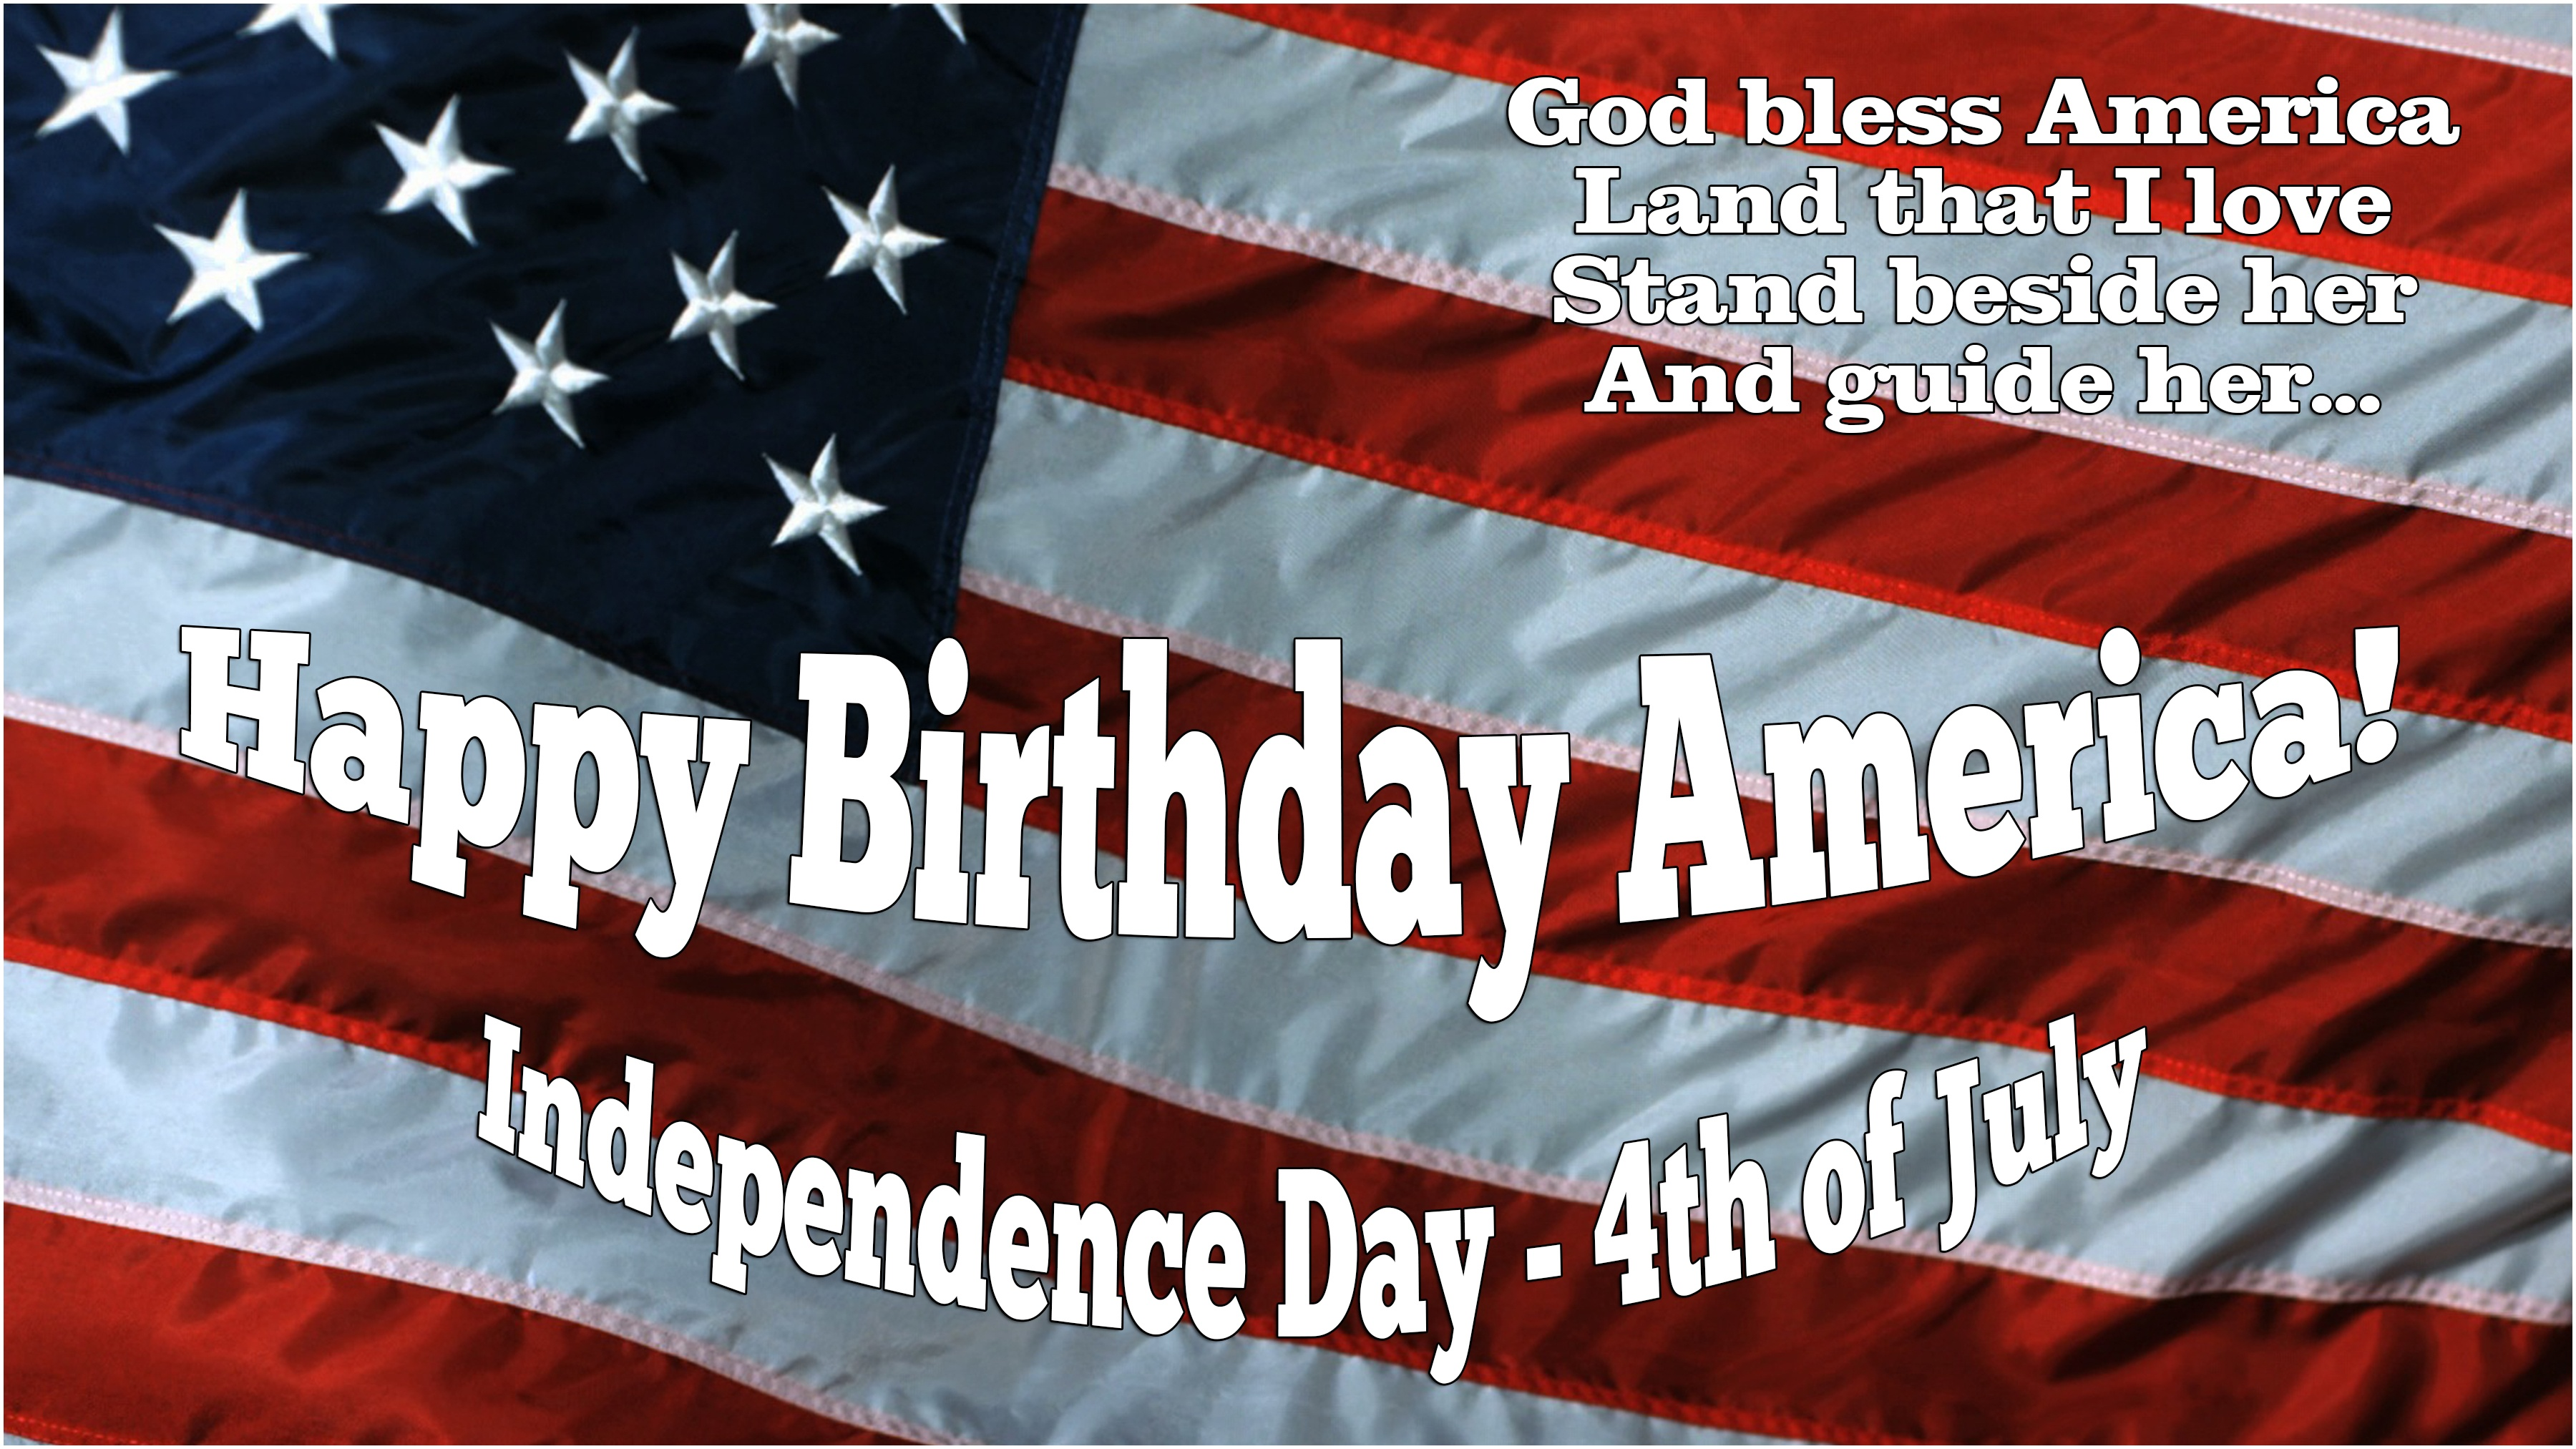 Happy Birthday America Independence Day July 4th Adr Business